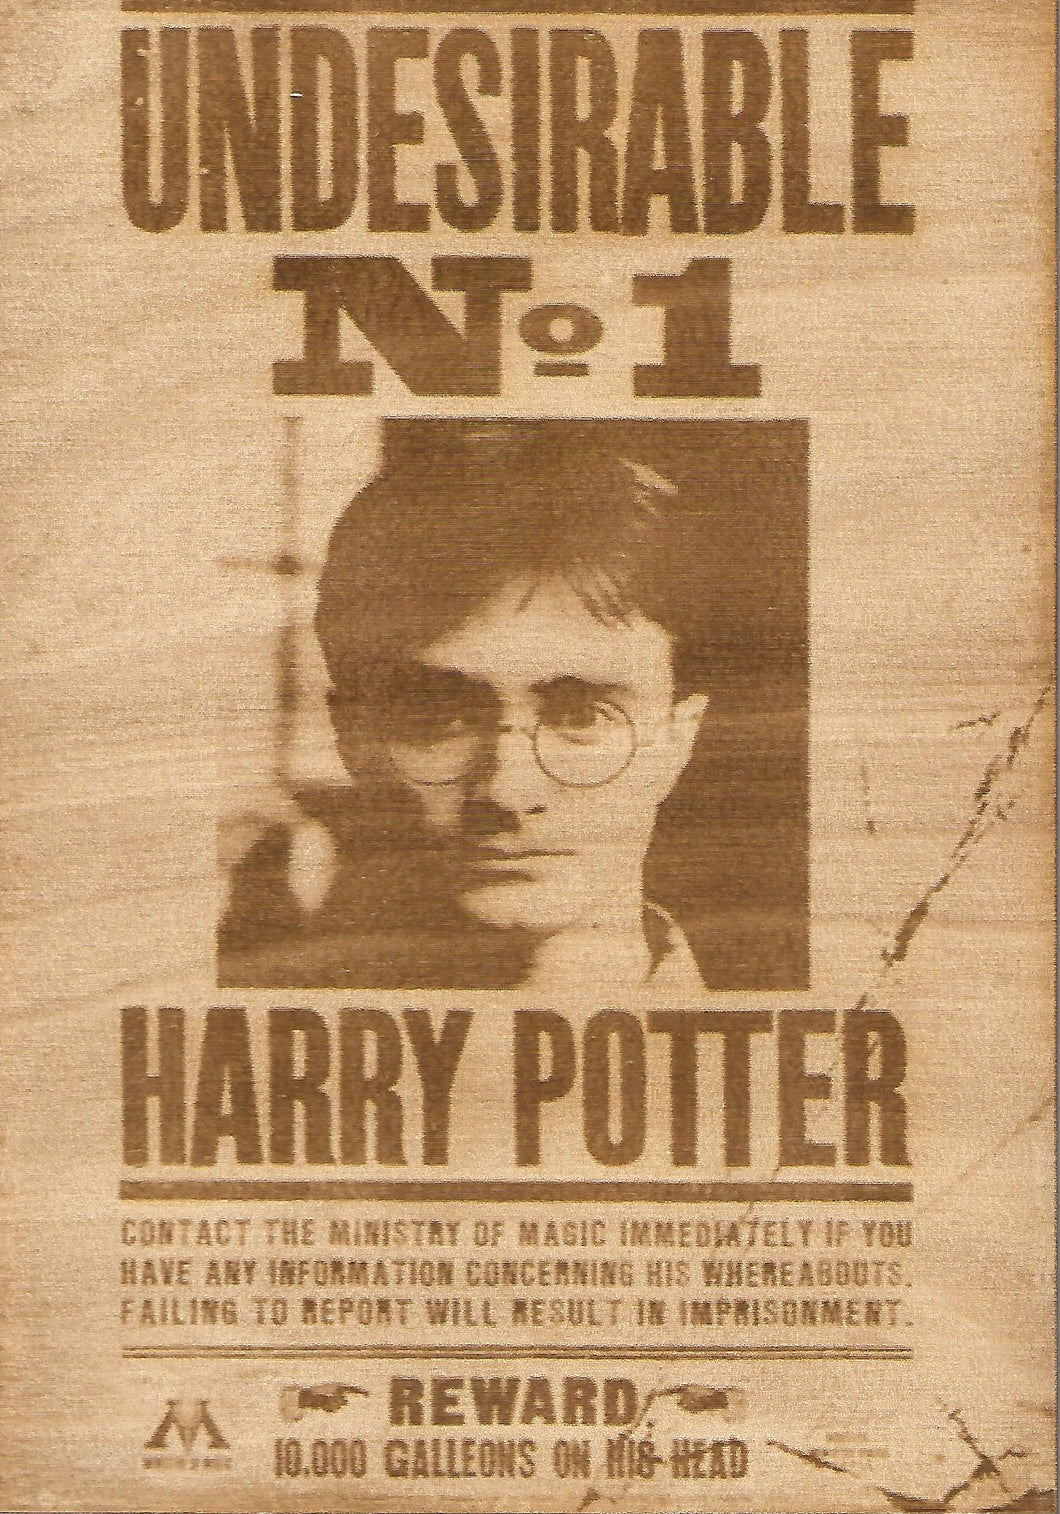 Harry Potter - Harry Potter (Undesirable No. 1) Wooden Wanted Poster - TantrumCollectibles.com